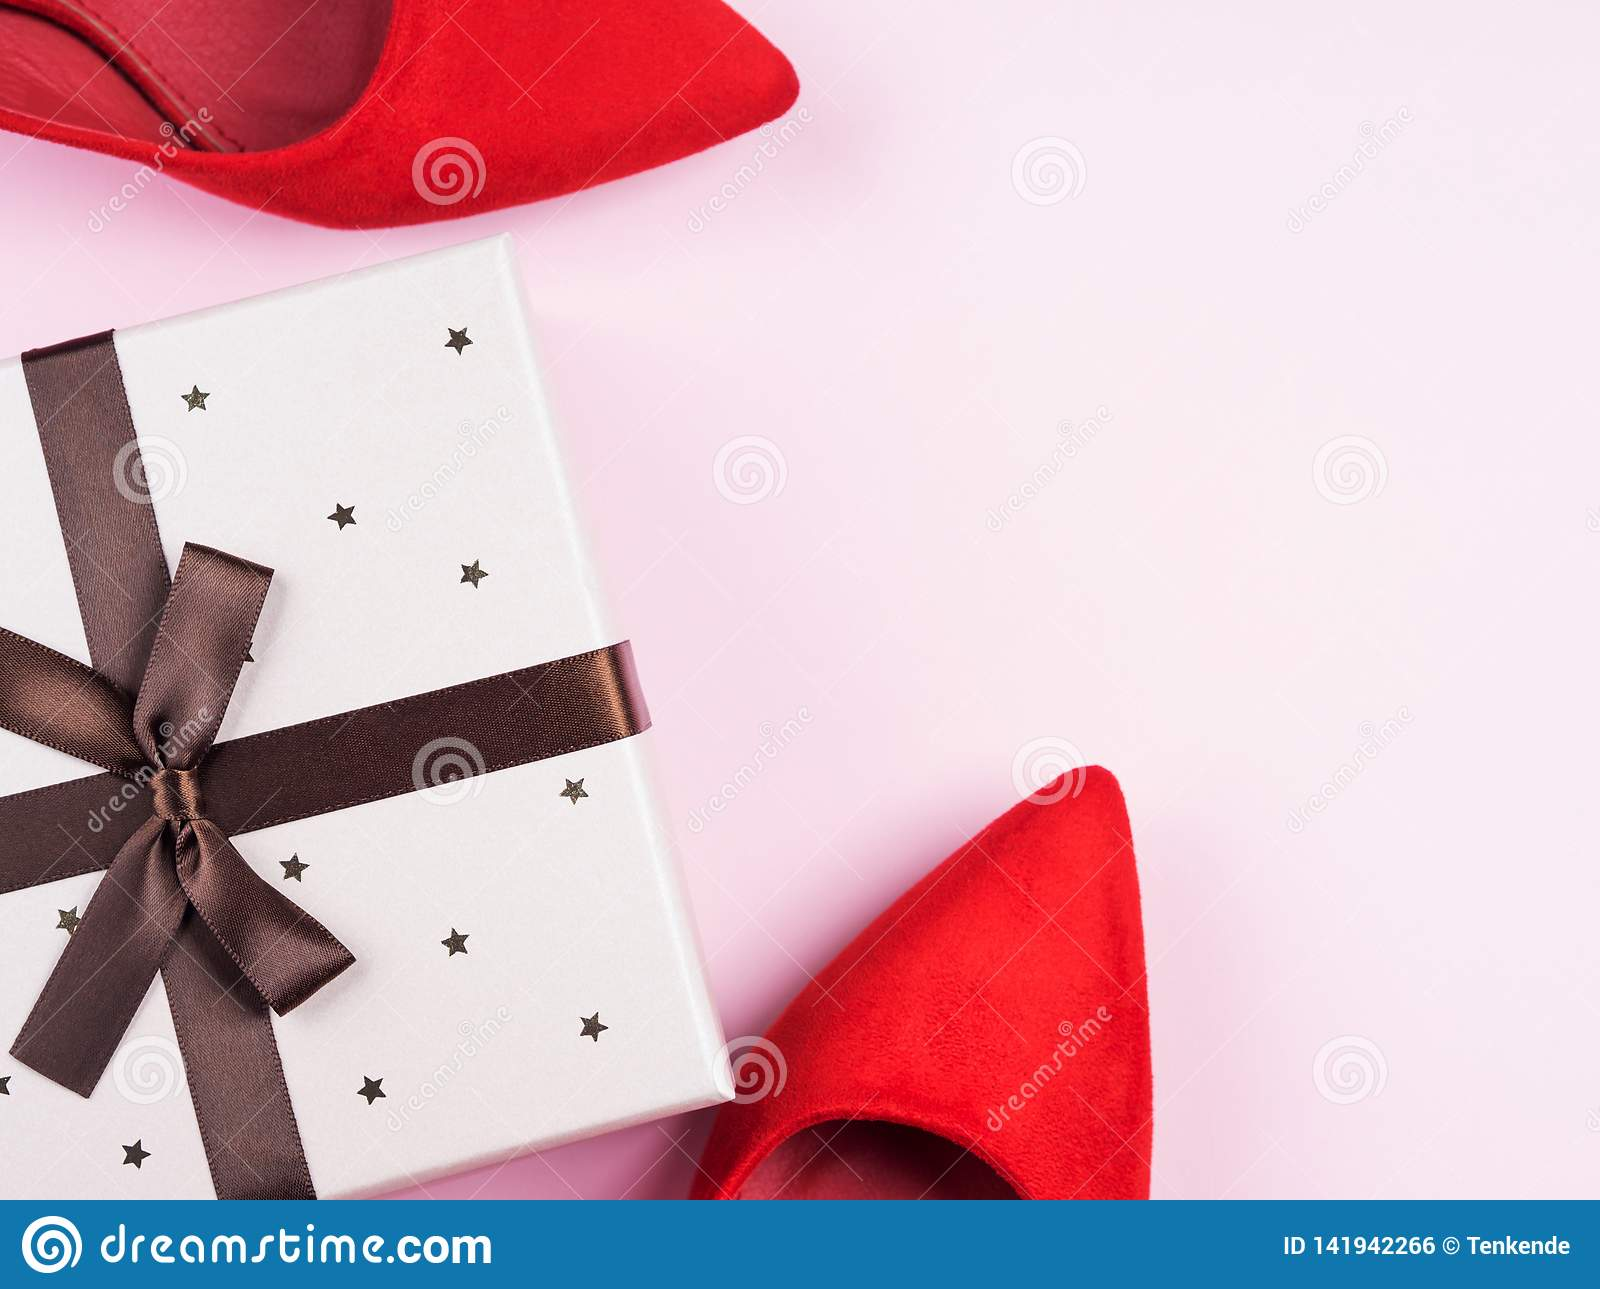 Pink Background With Red Shoes And Gift Box Stock Photo